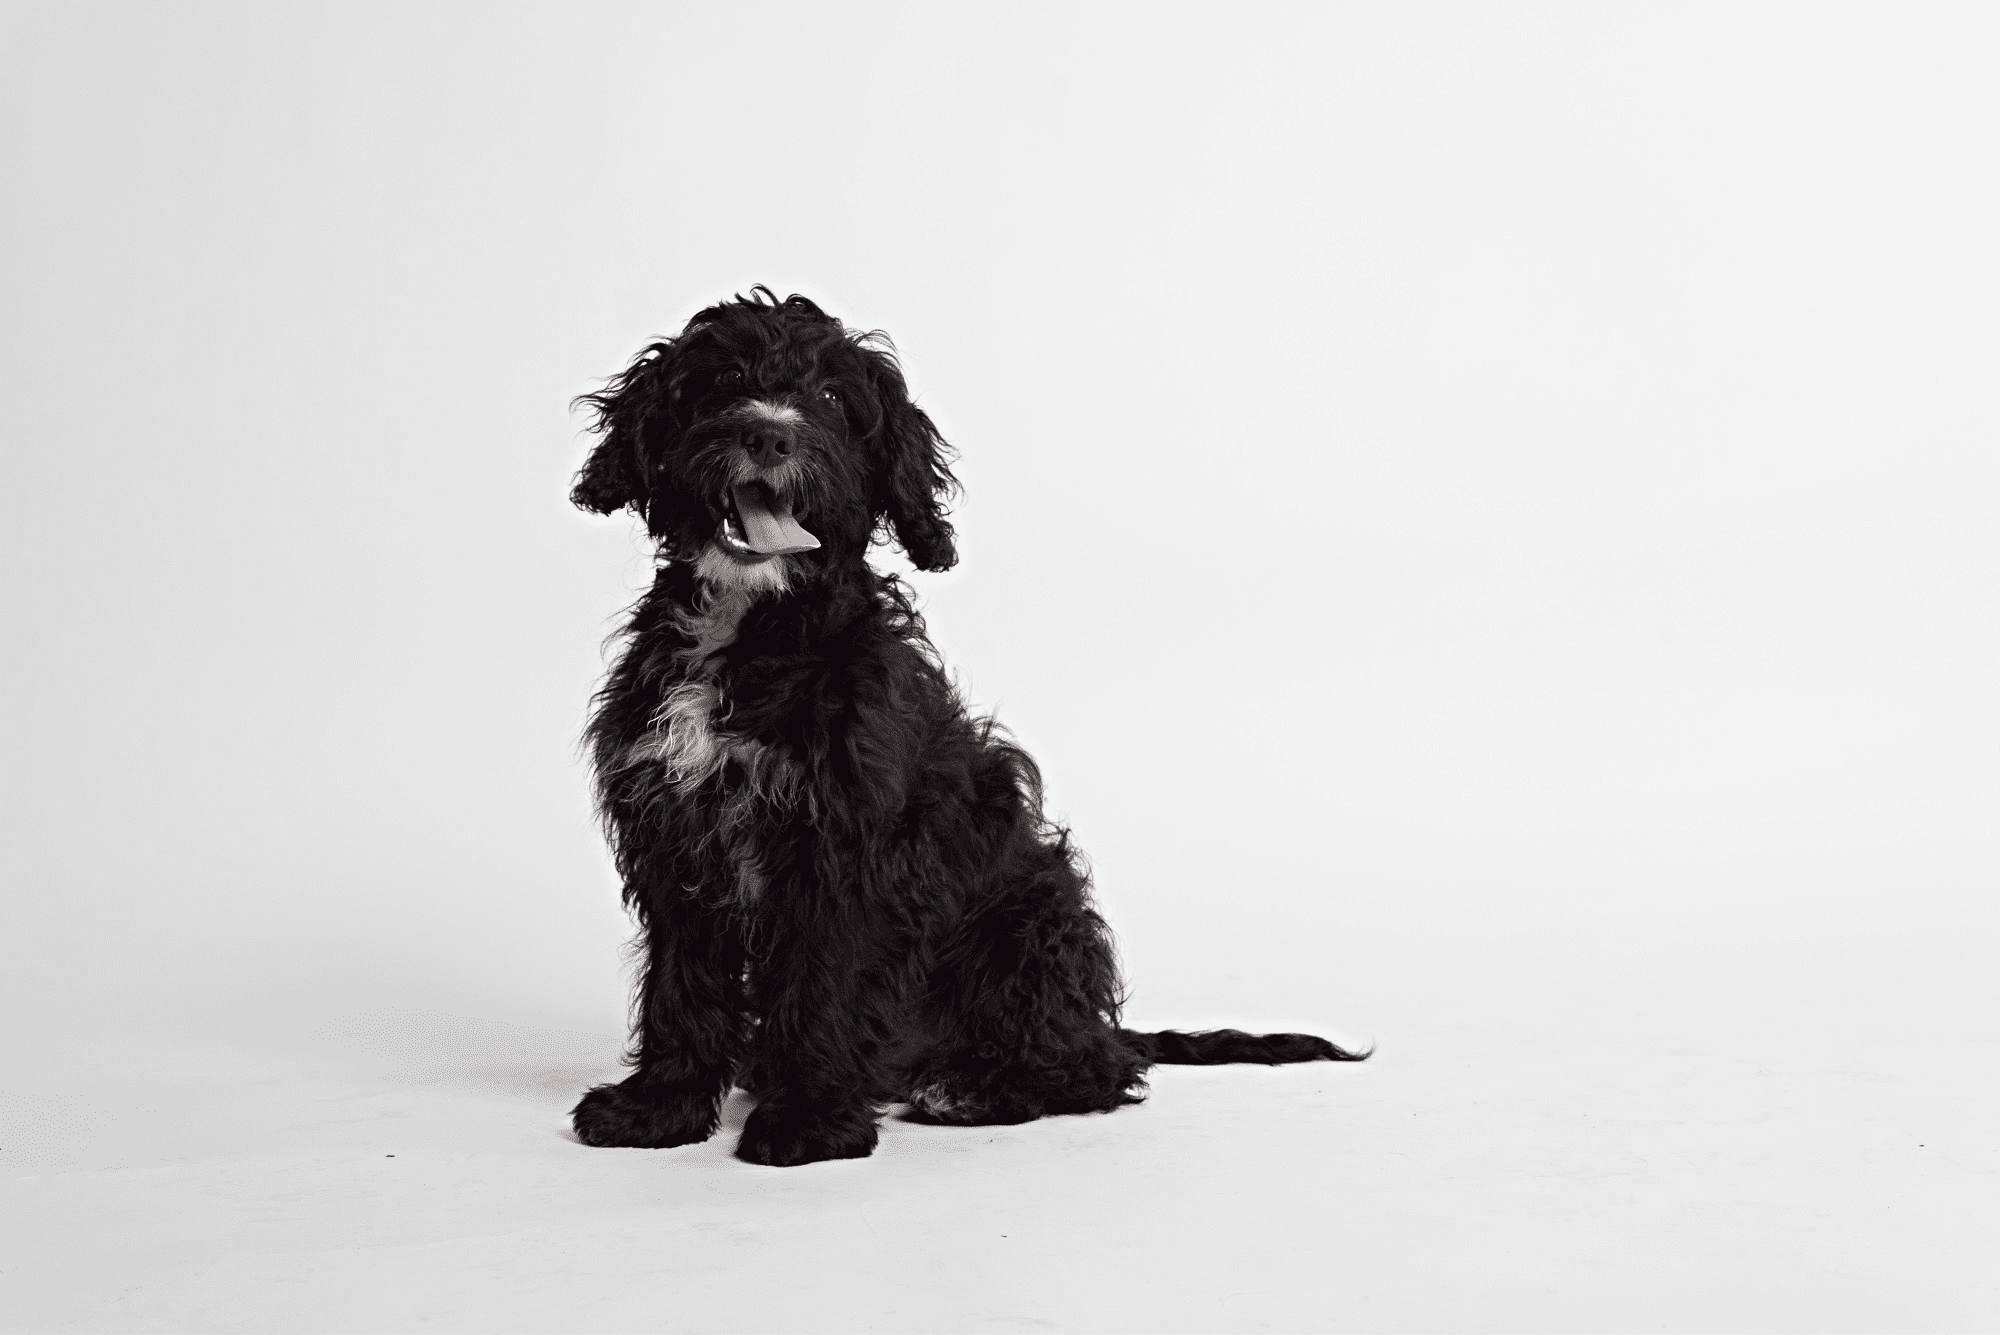 Say 'hello' to Max, our Evogen Professional furry friend